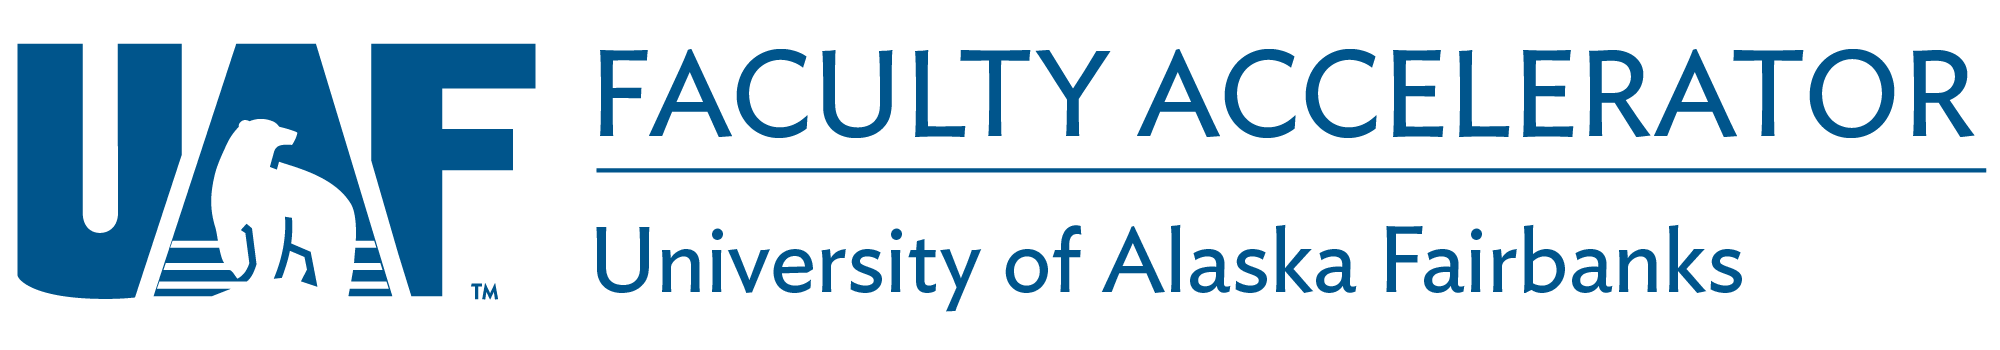 faculty accelerator logo